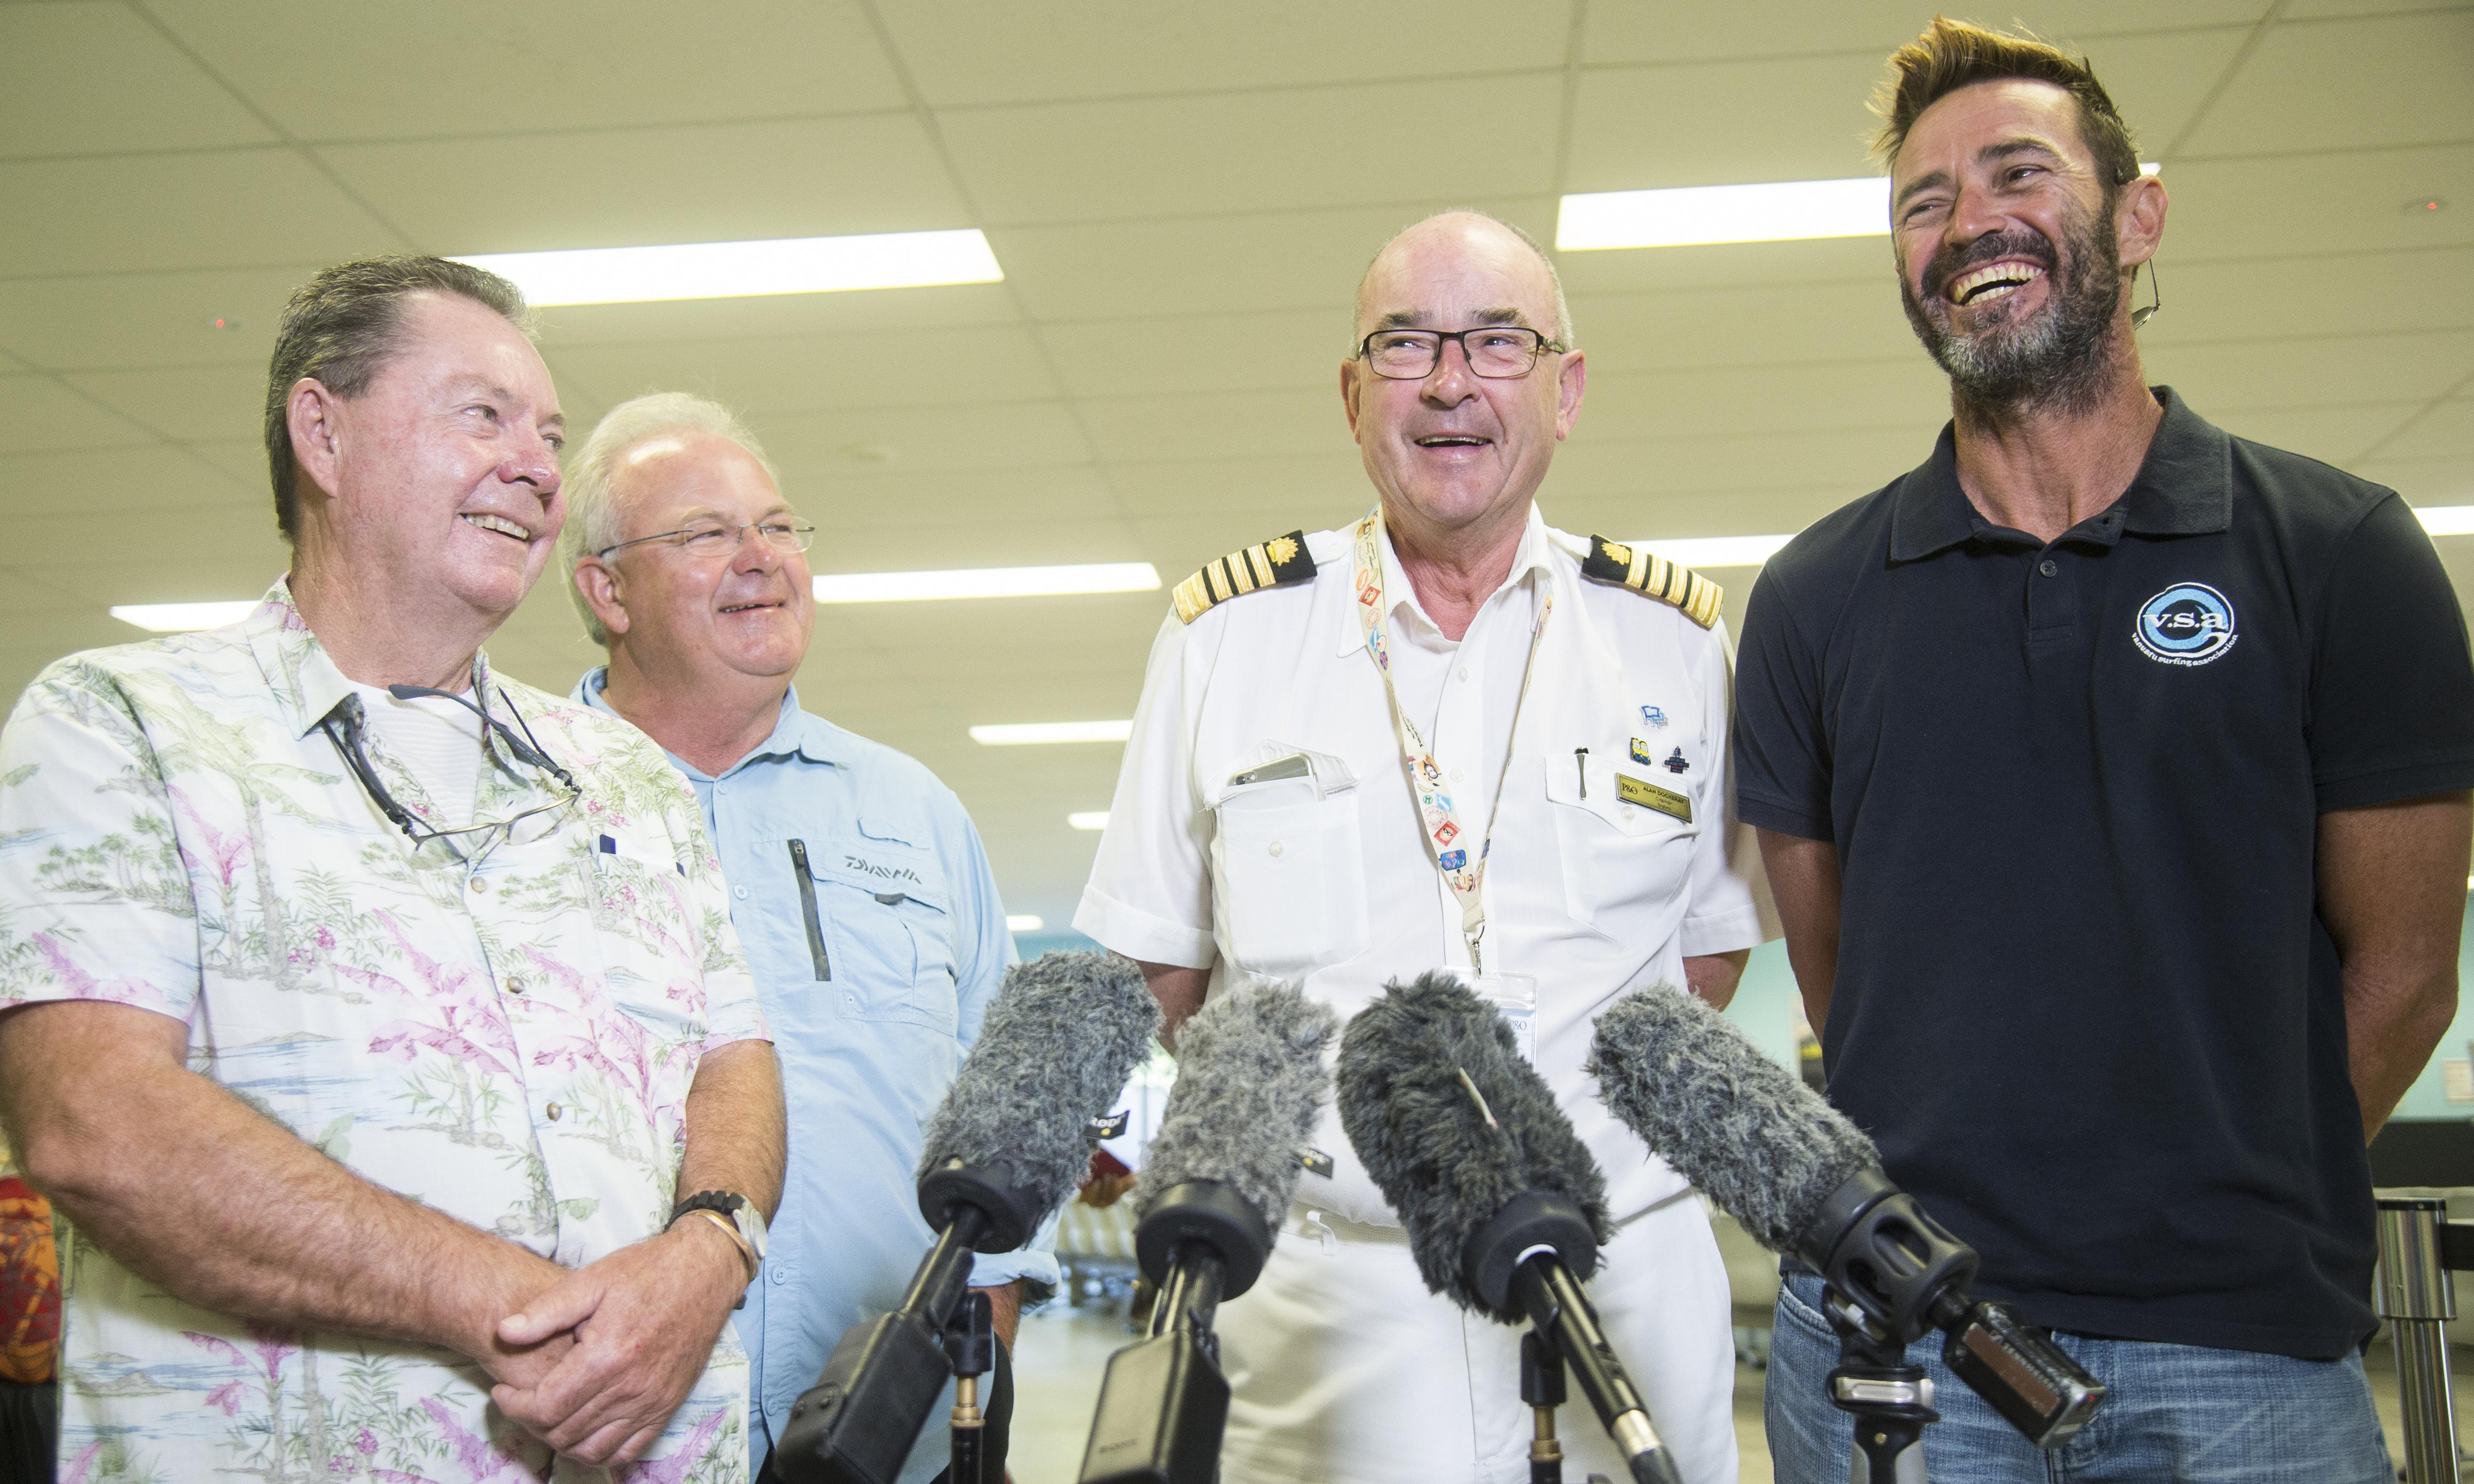 Sailing trio voice relief after P&O cruise ship rescue in South Pacific